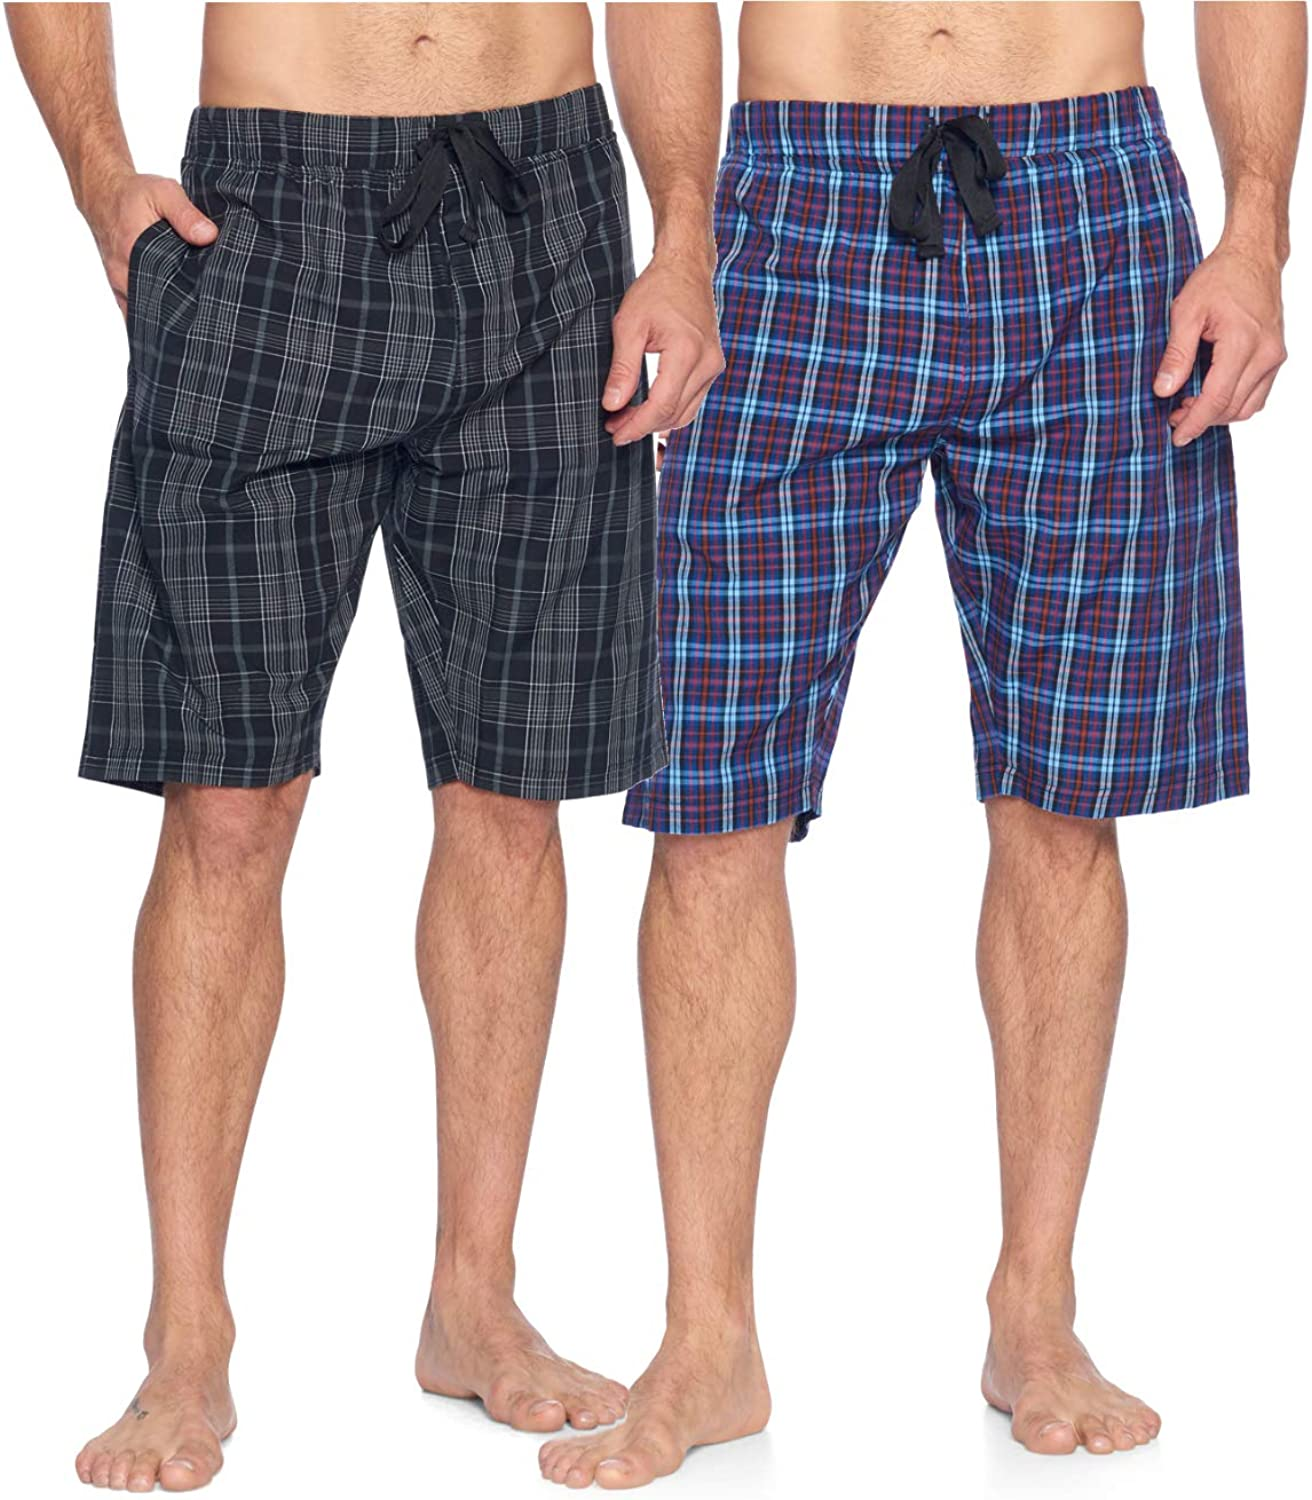 Ashford & Brooks Men's Sleep Pajama Lounge Boxer Shorts | Woven Plaid PJ Jammies Boxers Bottoms